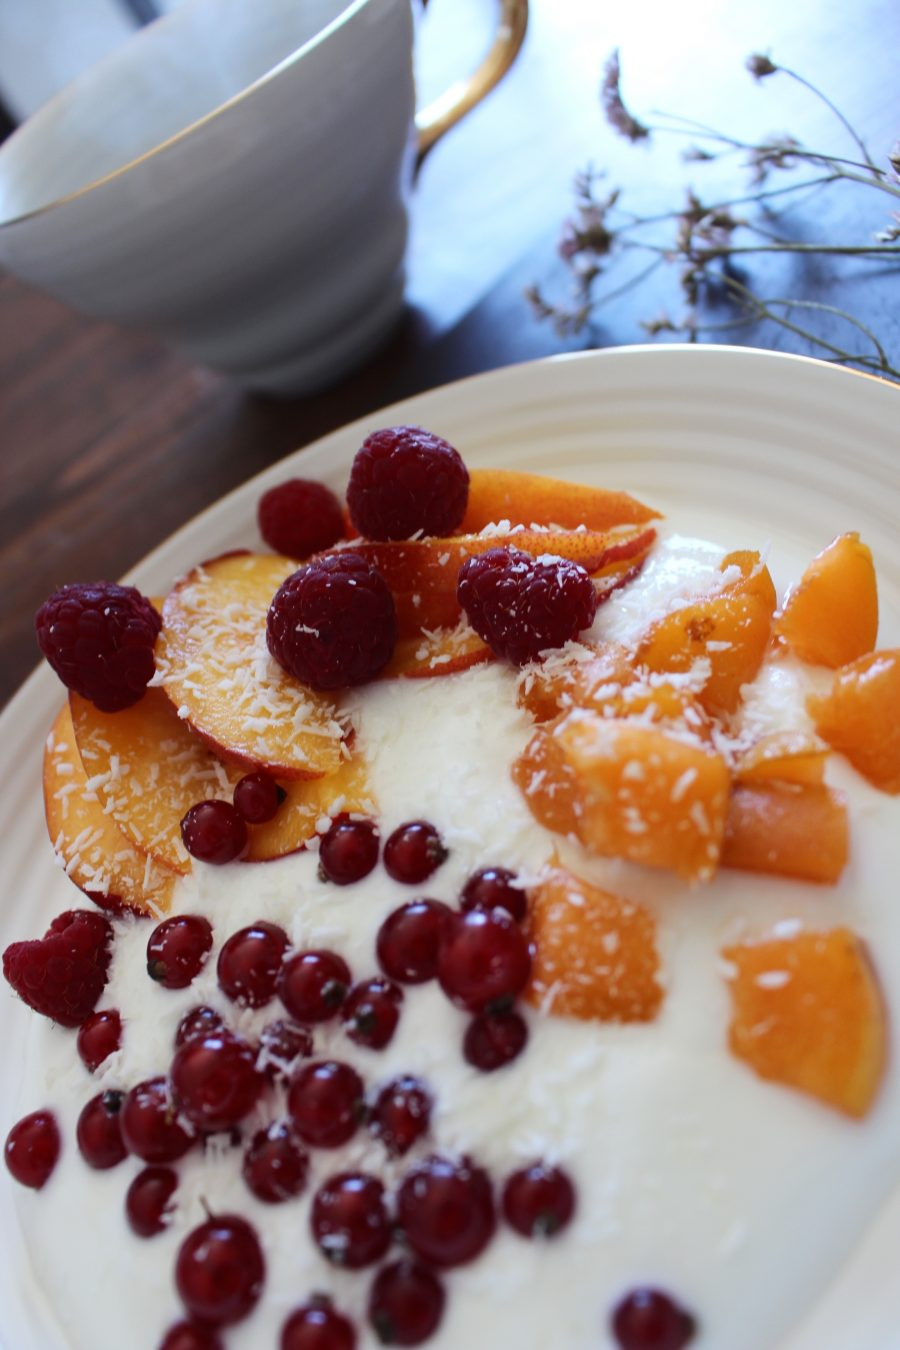 Greek Joghurt with Fruit